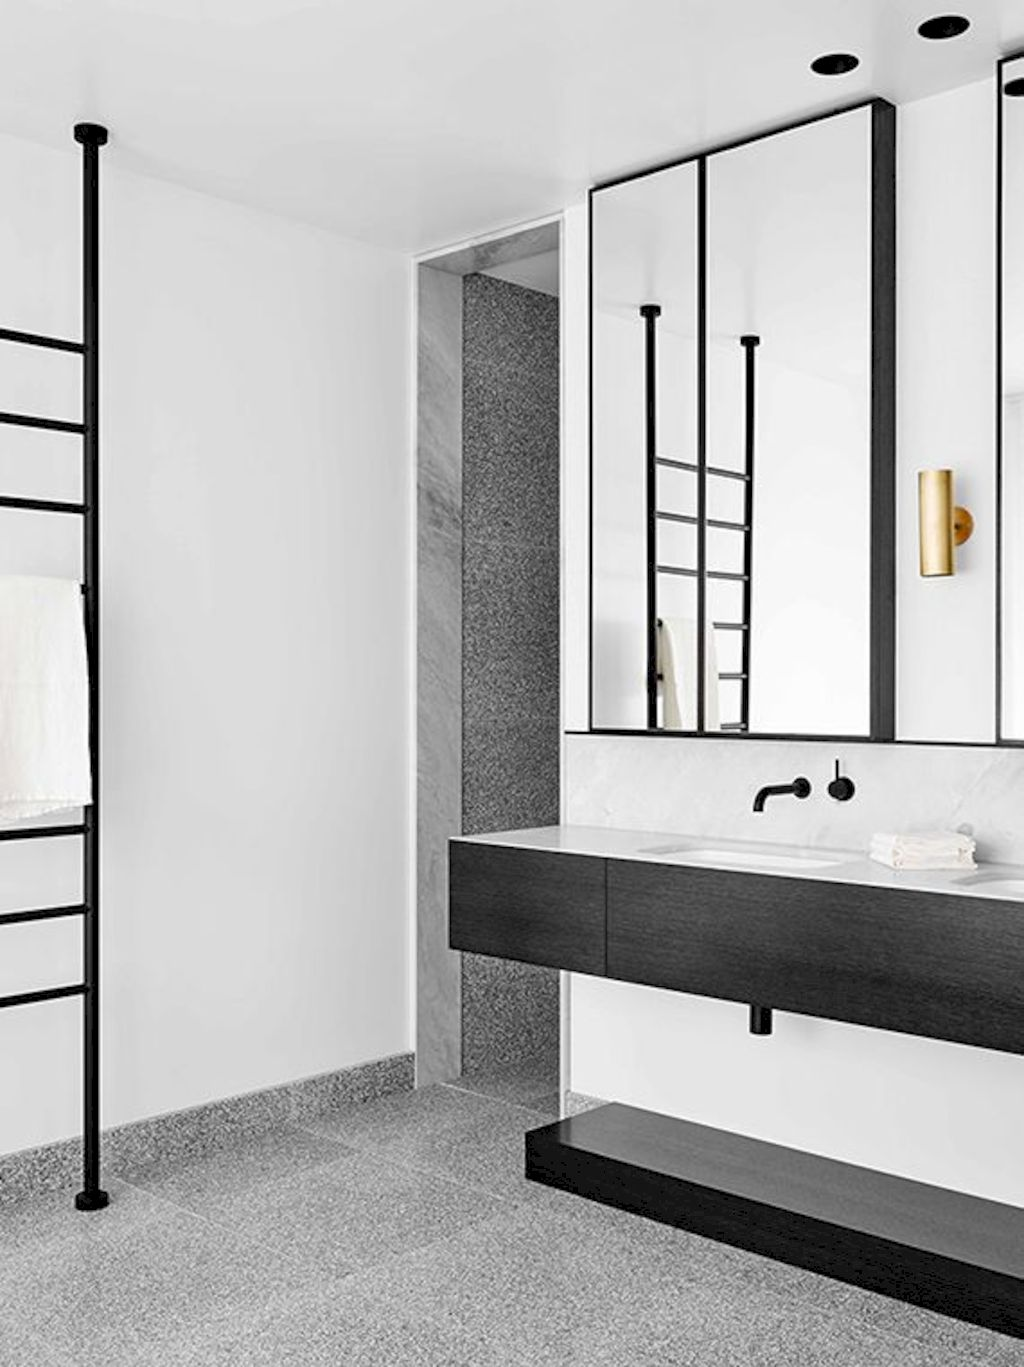 Creative bathroom updates mixing modern trend with simple 60s terrazzo style giving a brilliant contemporary balance Image 25